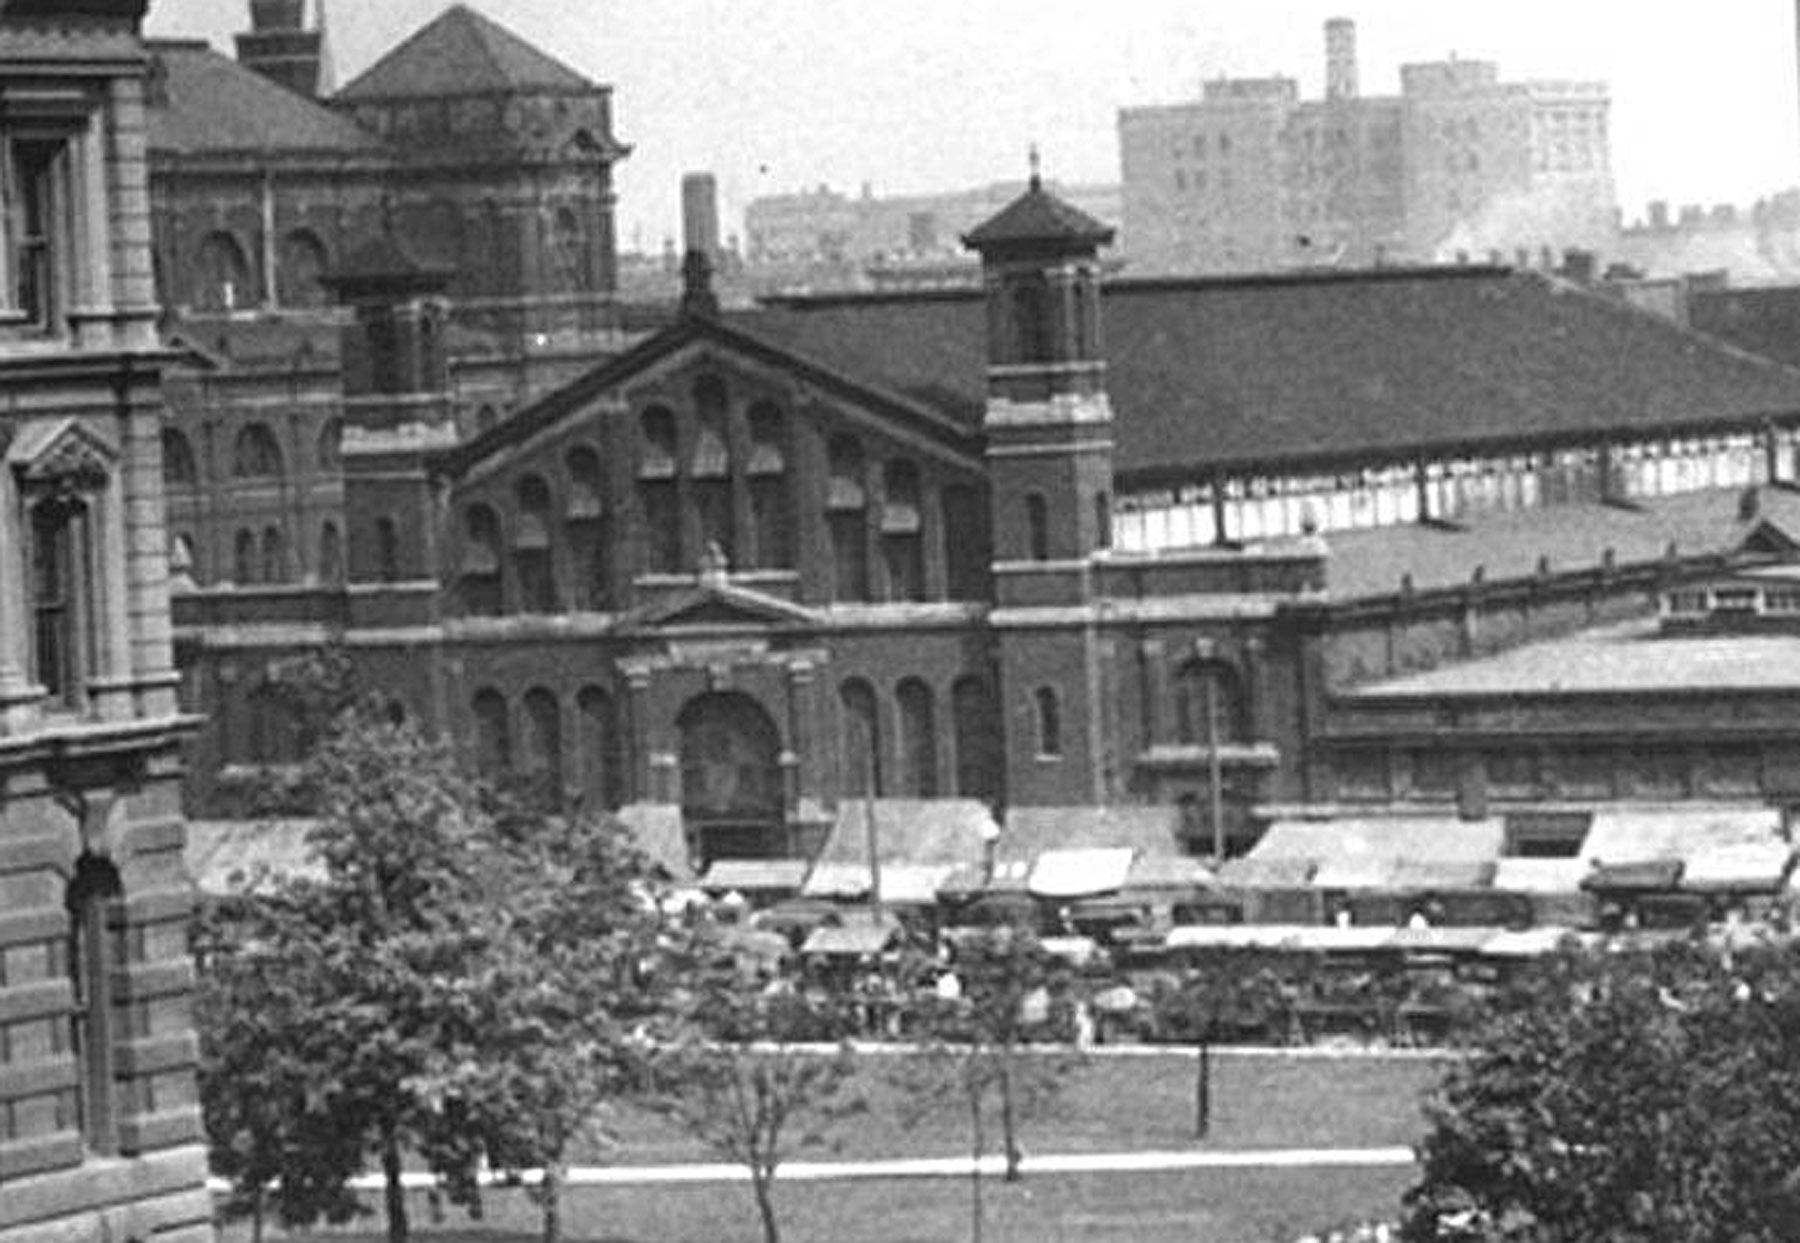 City Market as it looked in 1924.